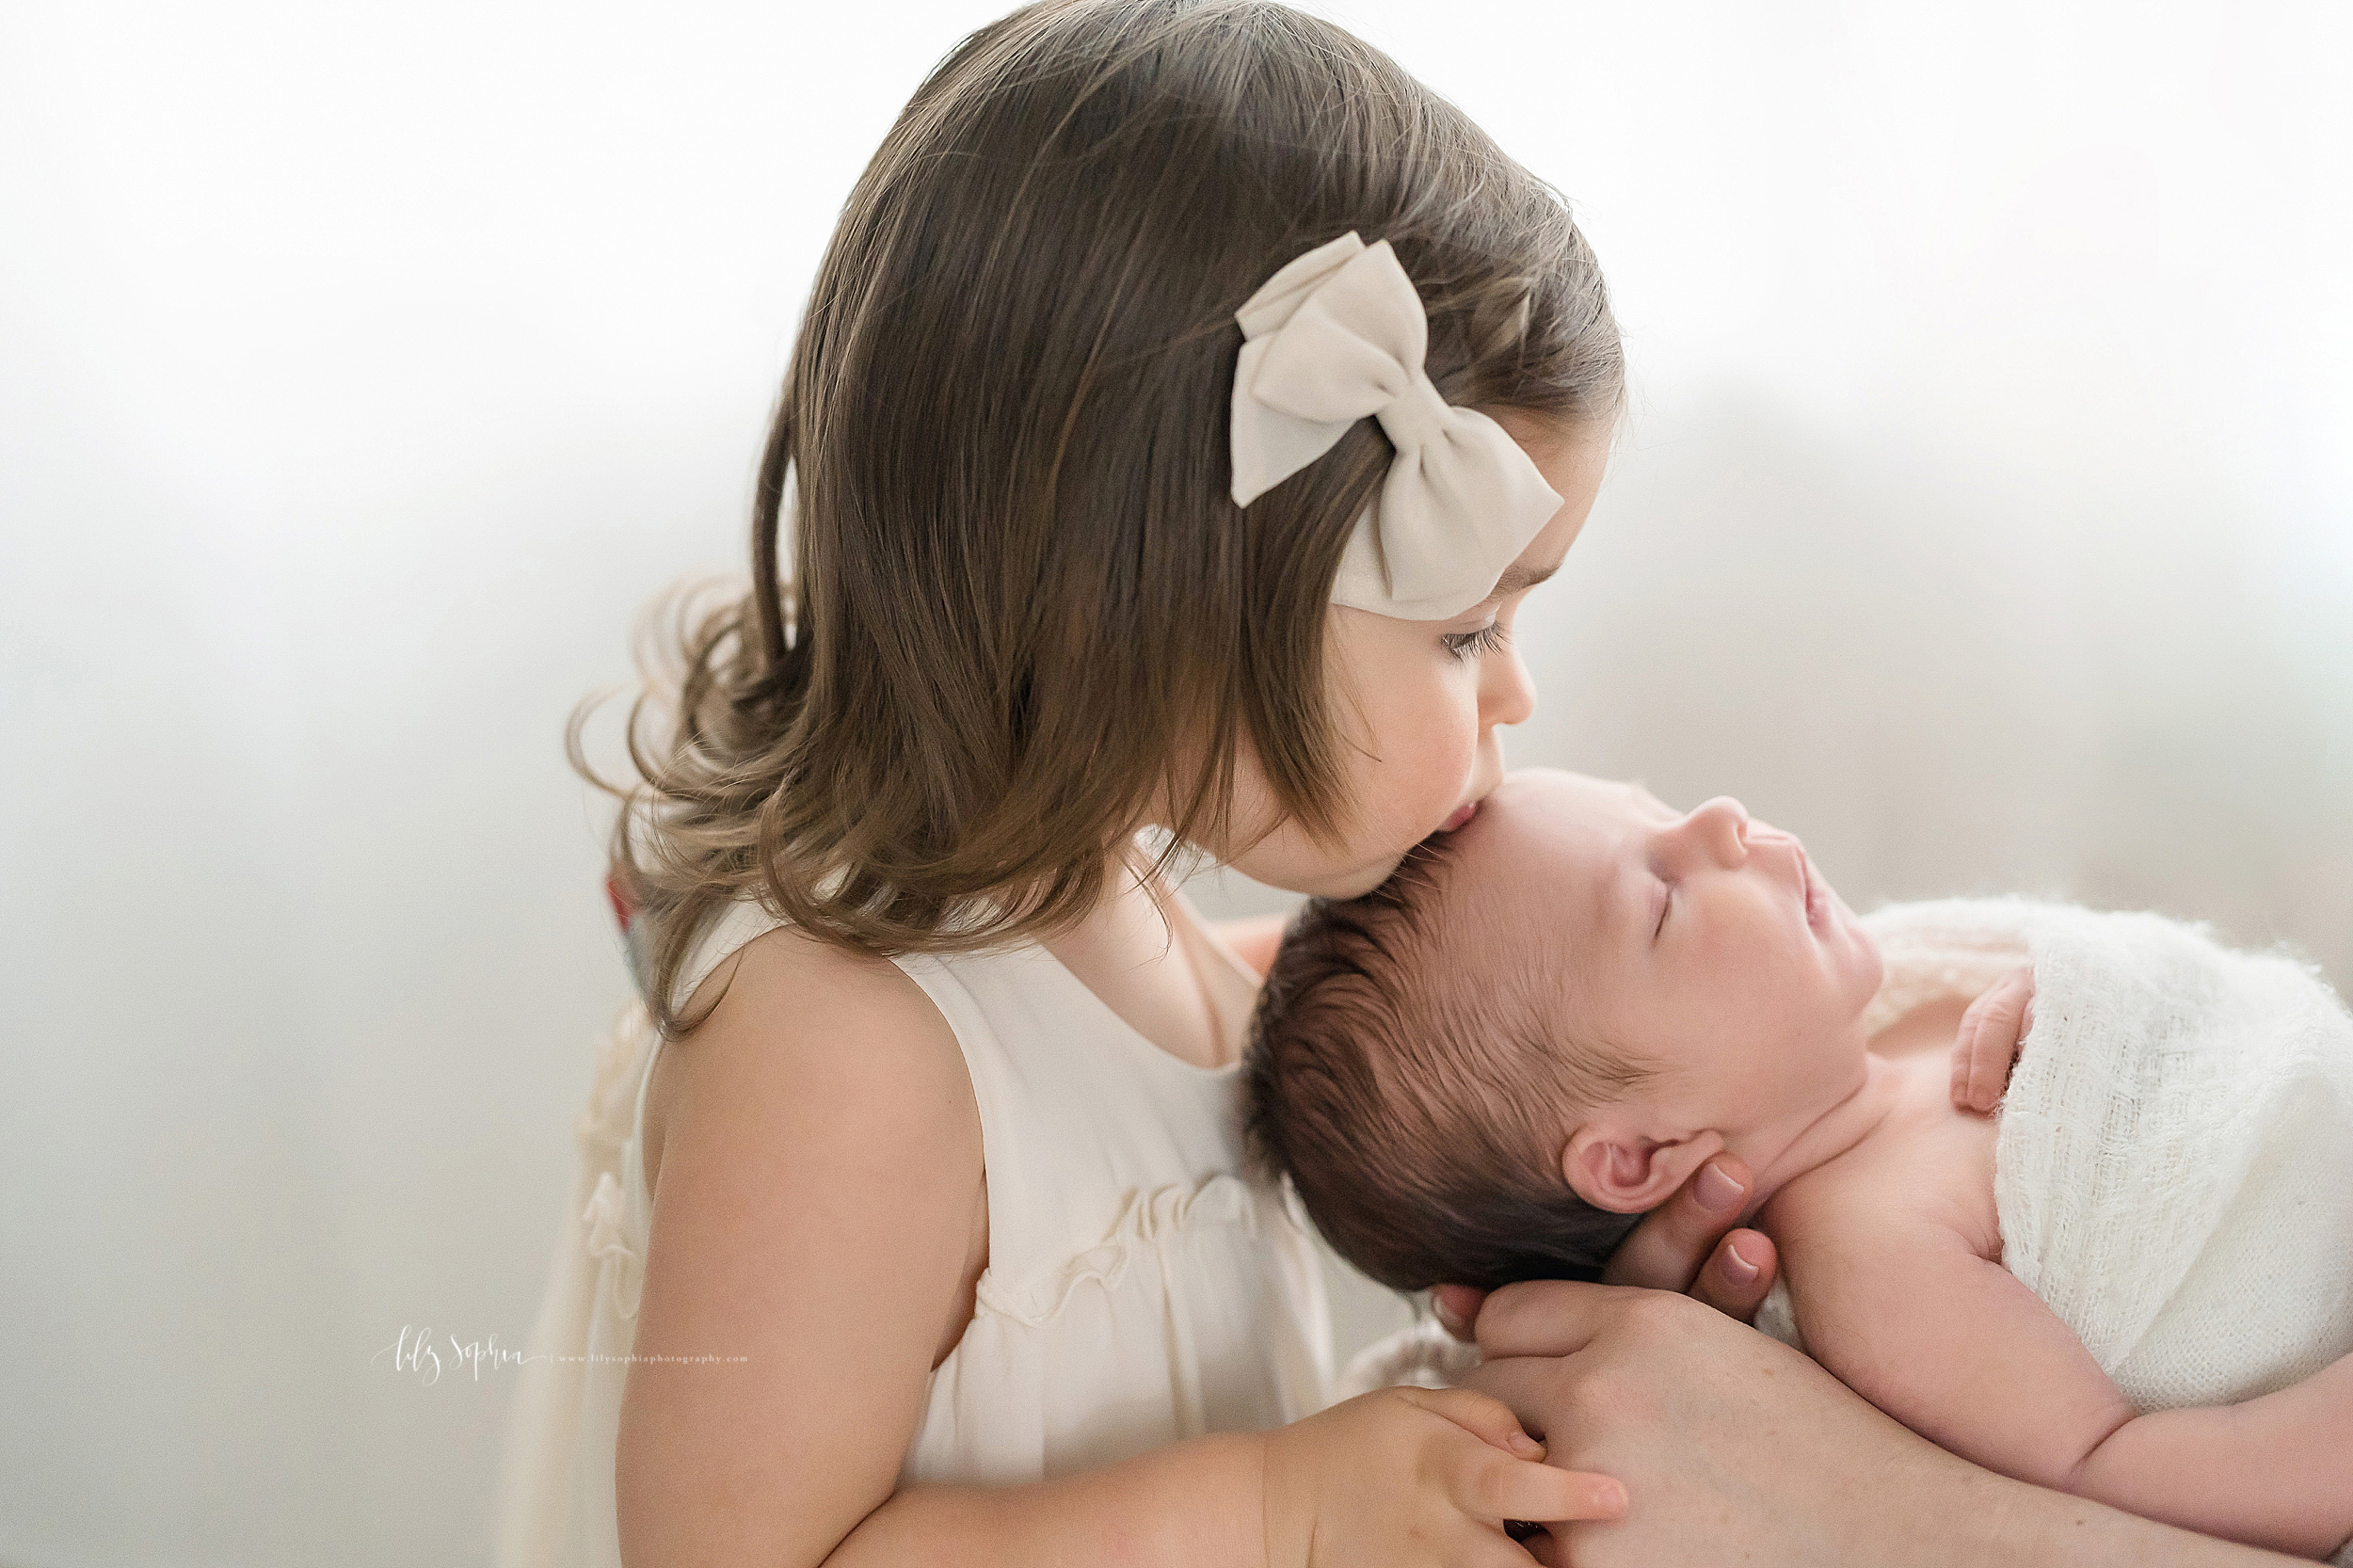 atlanta-decatur-candler-park-sandy-springs-buckhead-virginia-highlands-west-end-decatur-lily-sophia-photography-newborn-baby-boy-big-sister-family-photos_2084.jpg